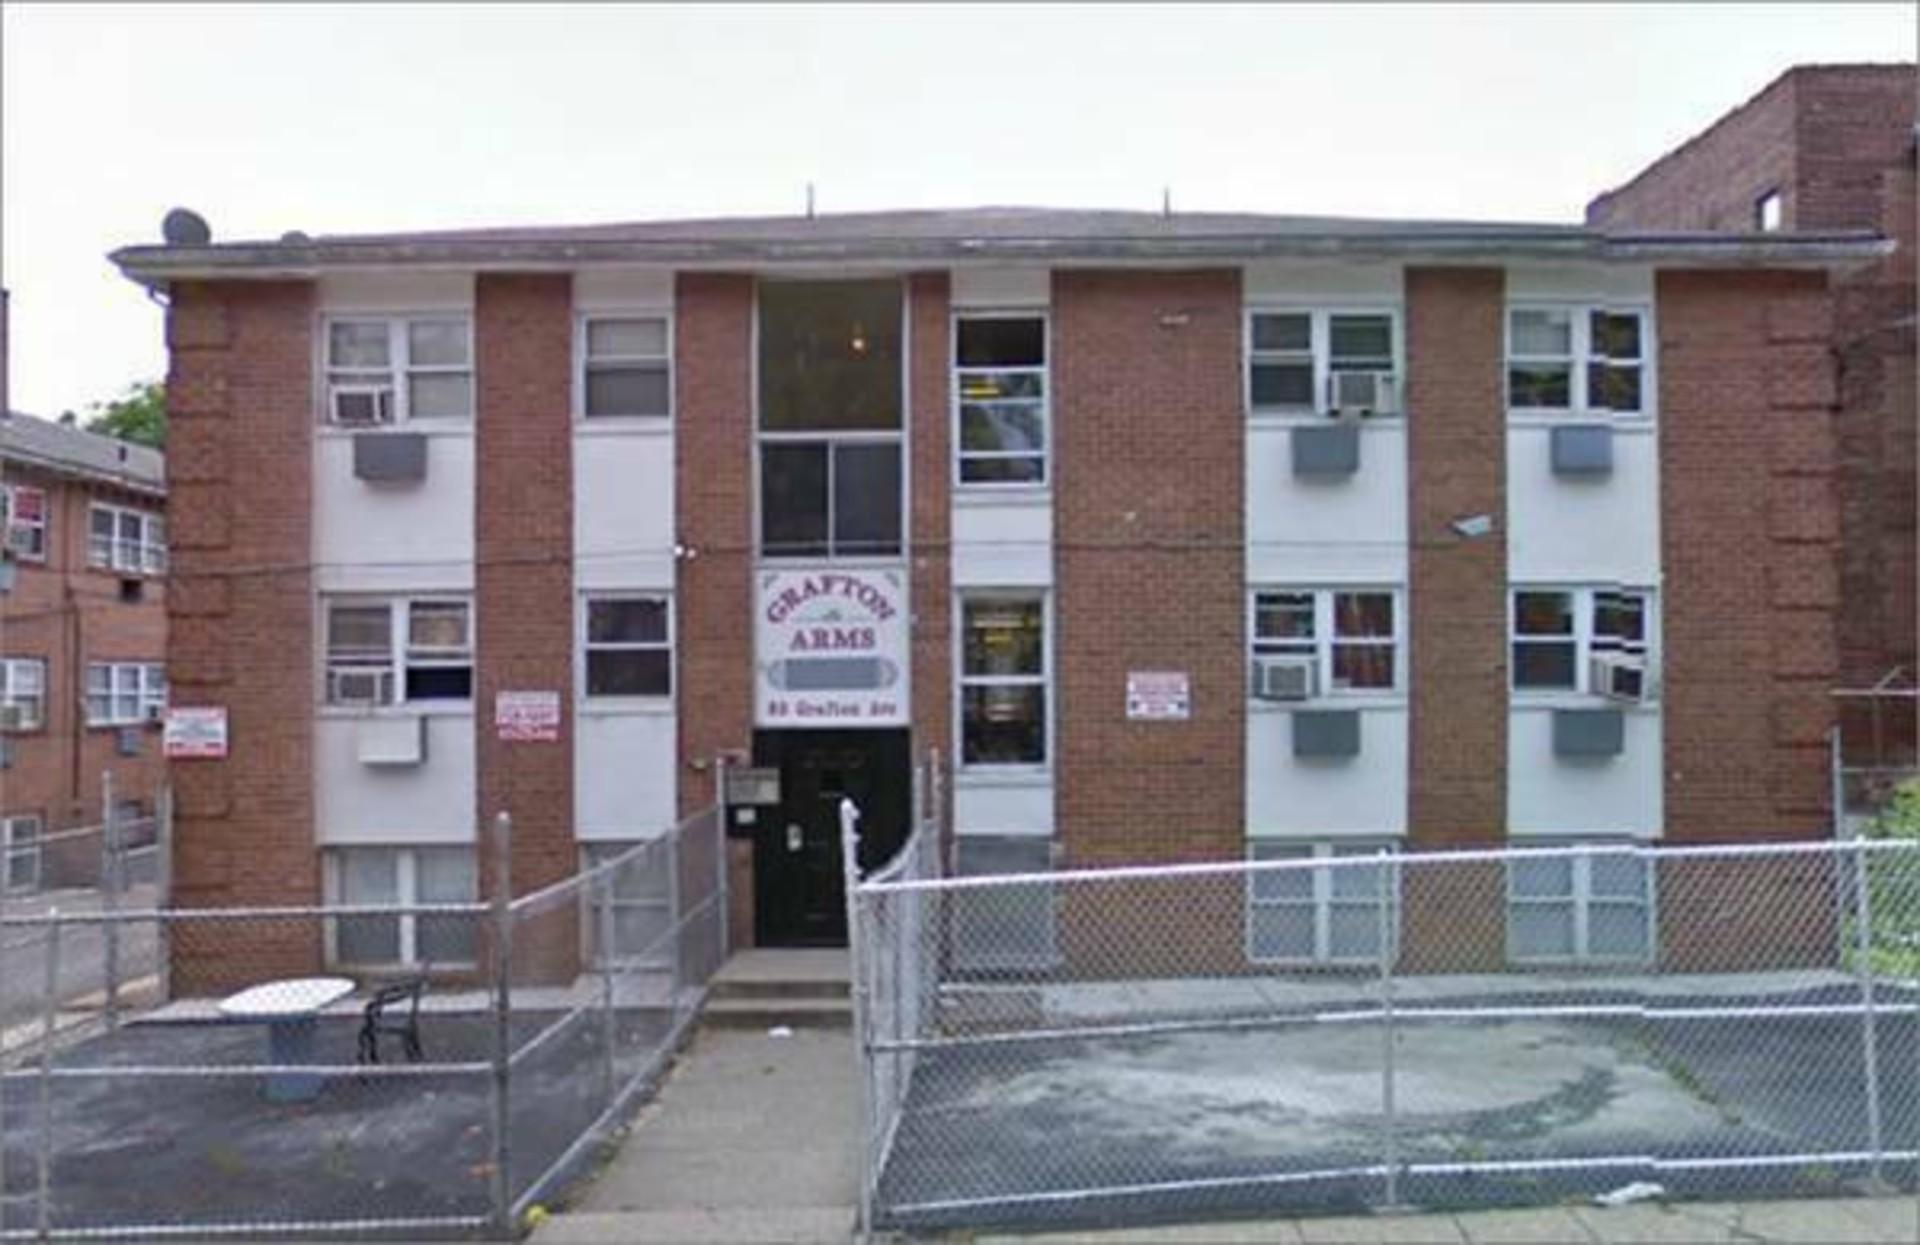 1 Bedroom Apartments Newark Nj One Bedroom Apartments In